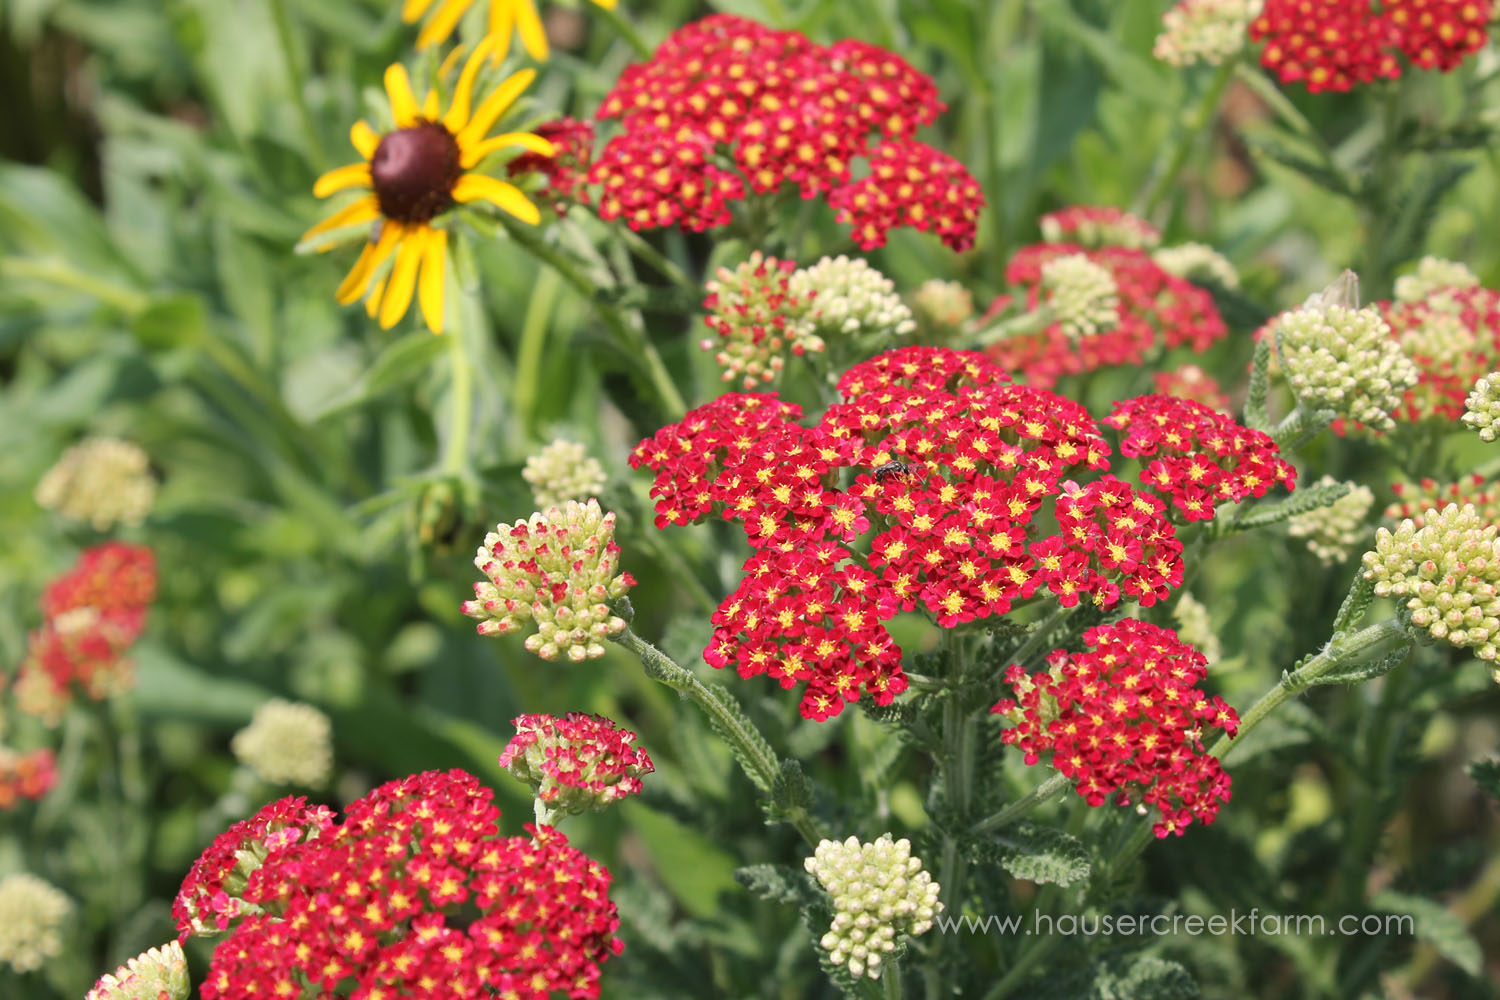 yarrow-black-eyed-susan-open-farm-day-melody-watson-photo-1541.jpg